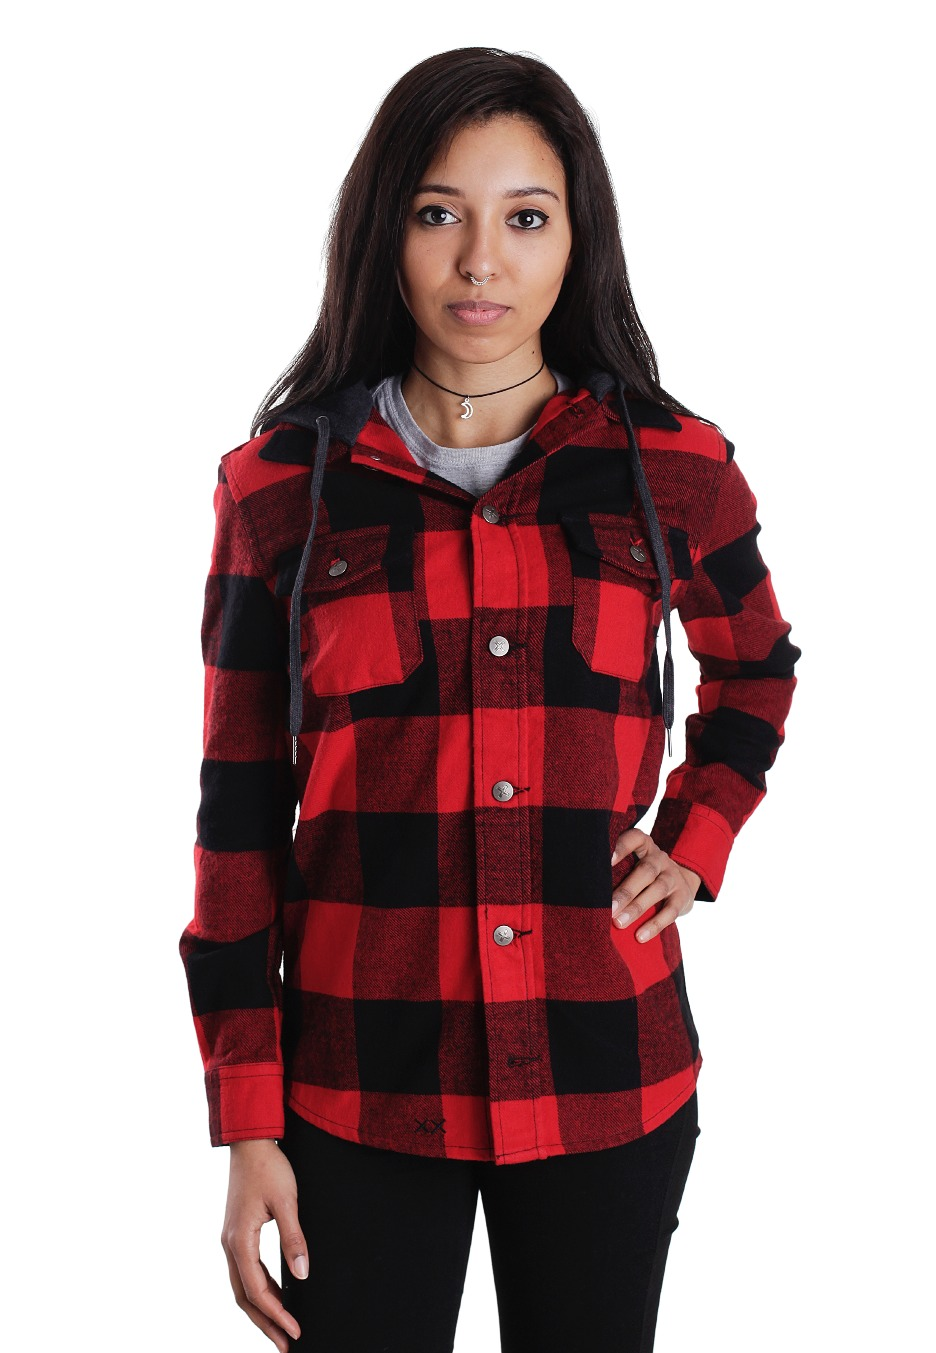 Shop for girls flannel plaid shirts online at Target. Free shipping on purchases over $35 and save 5% every day with your Target REDcard.